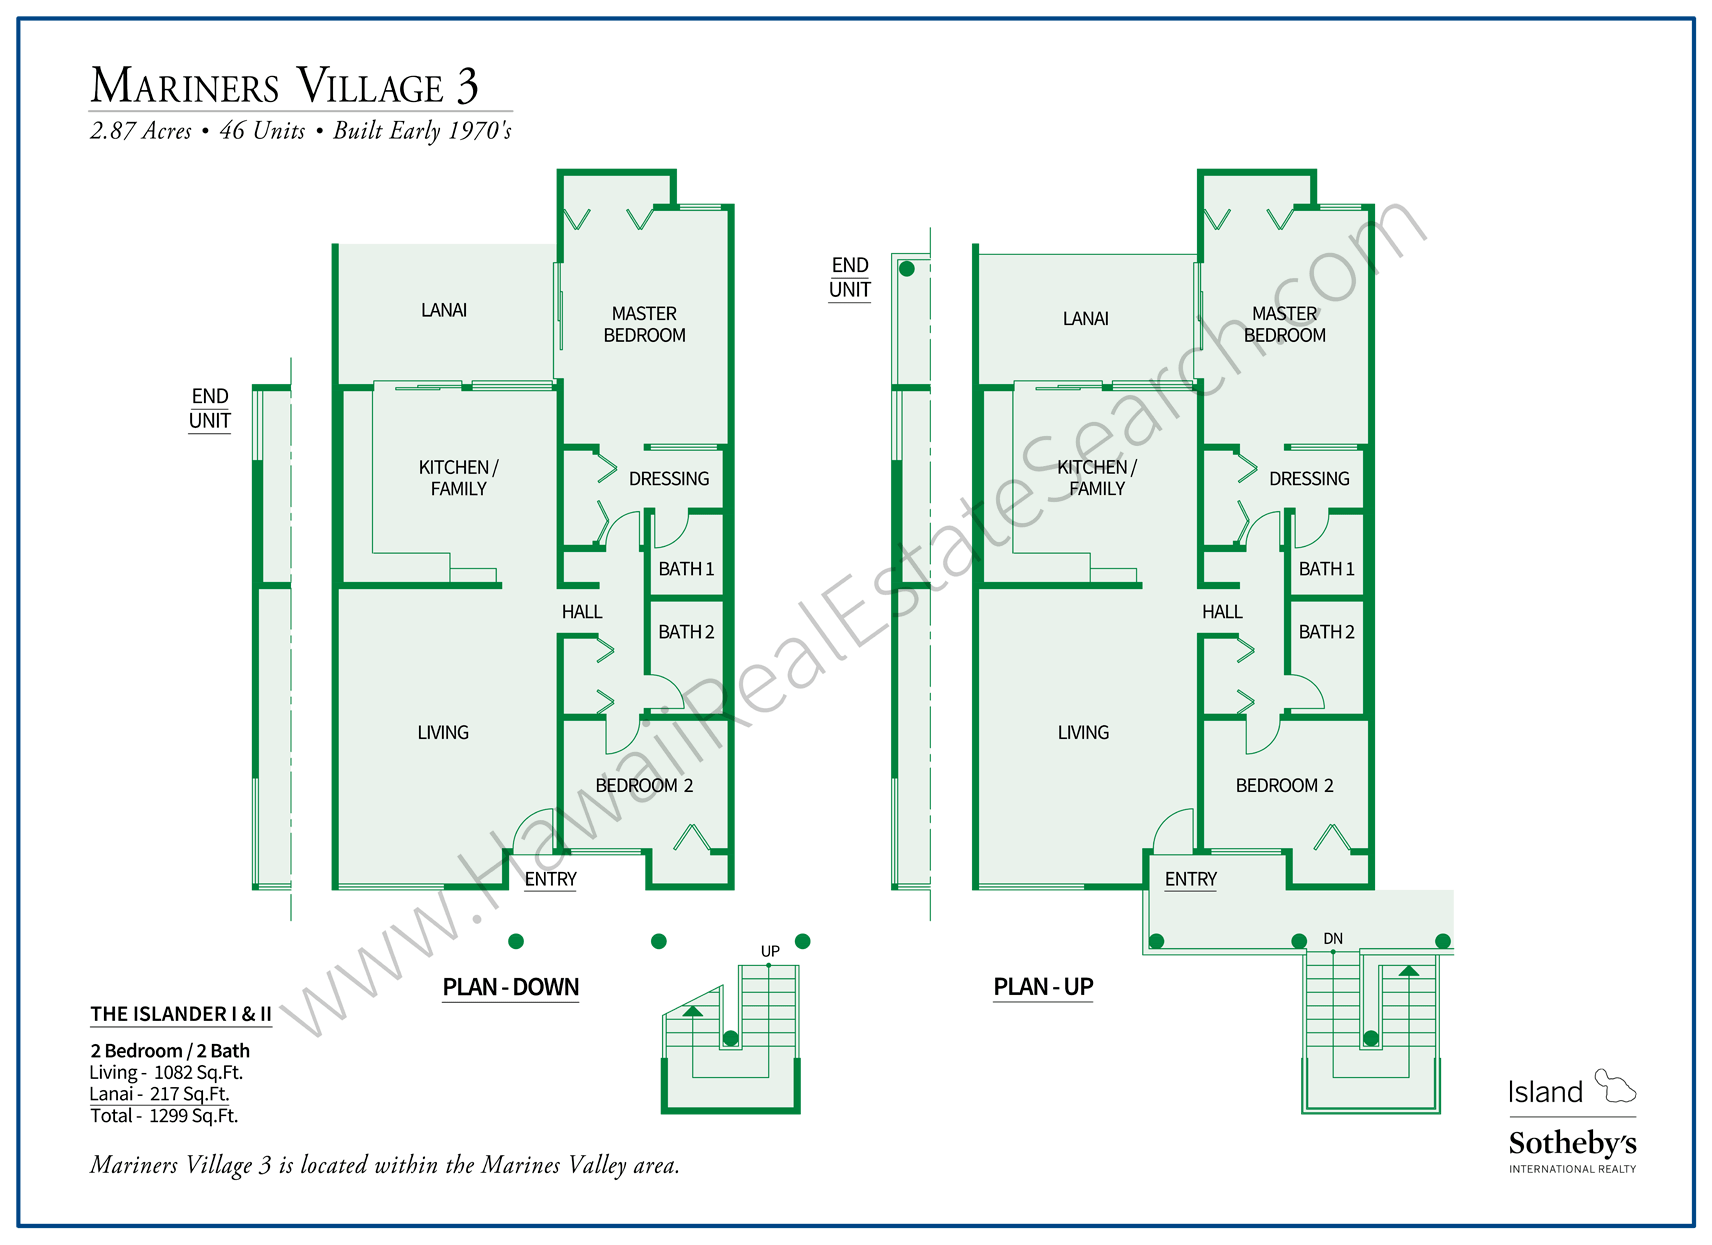 Hawaii Kai Mariners Village Floor Plan